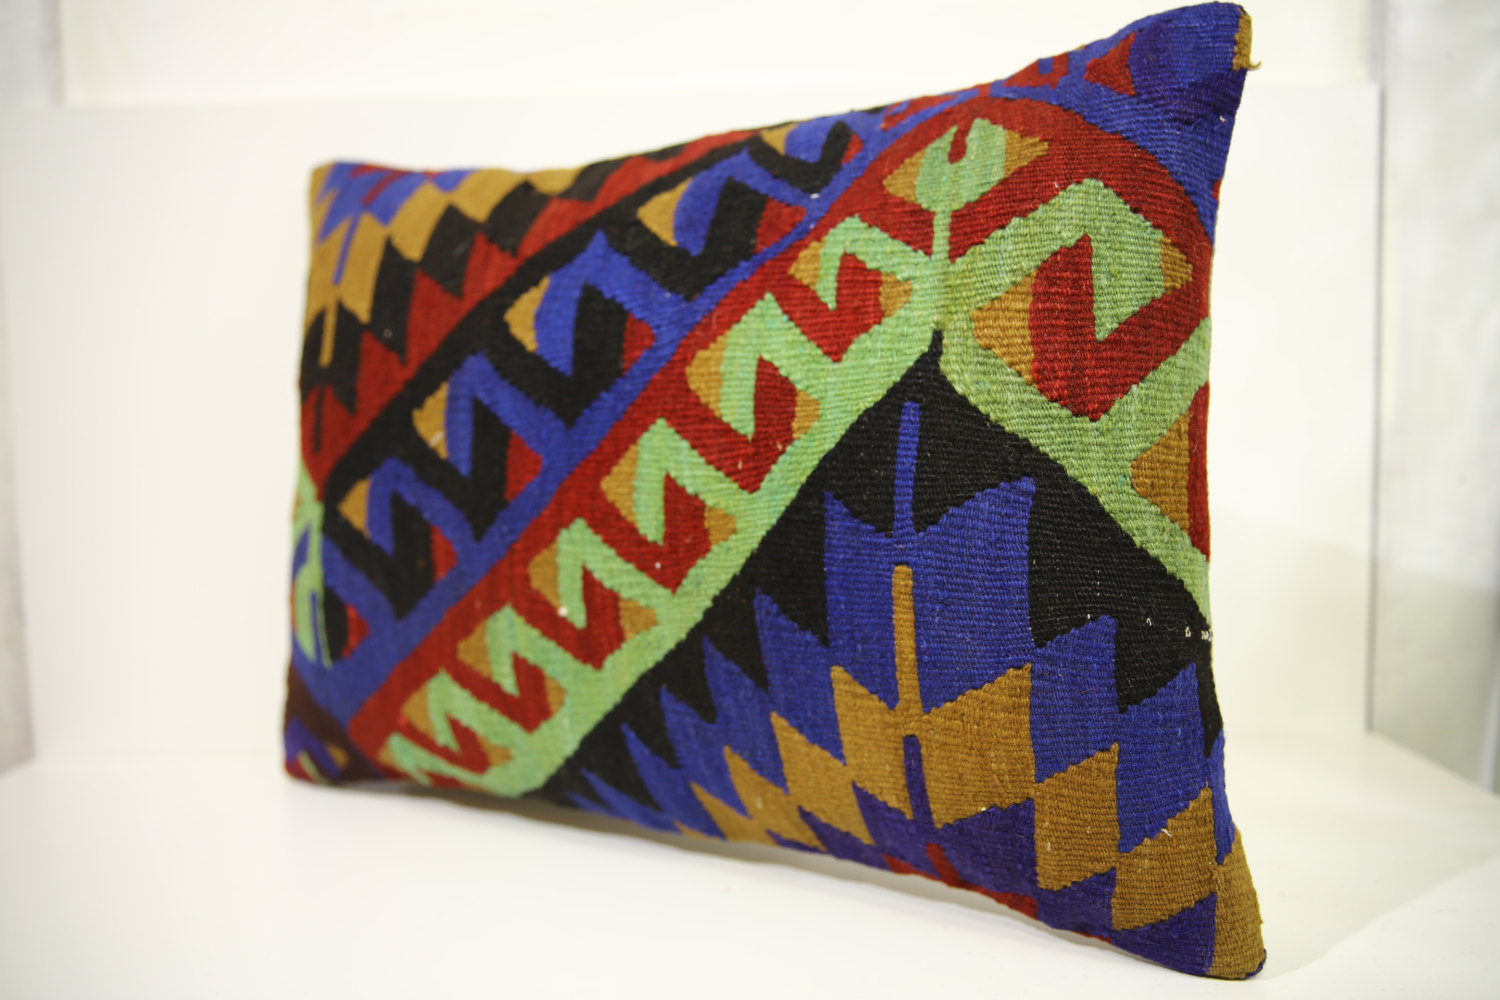 Kilim Pillows | 23x16 | Lumbar pillows | 1472 | Turkish pillows , throw pillows